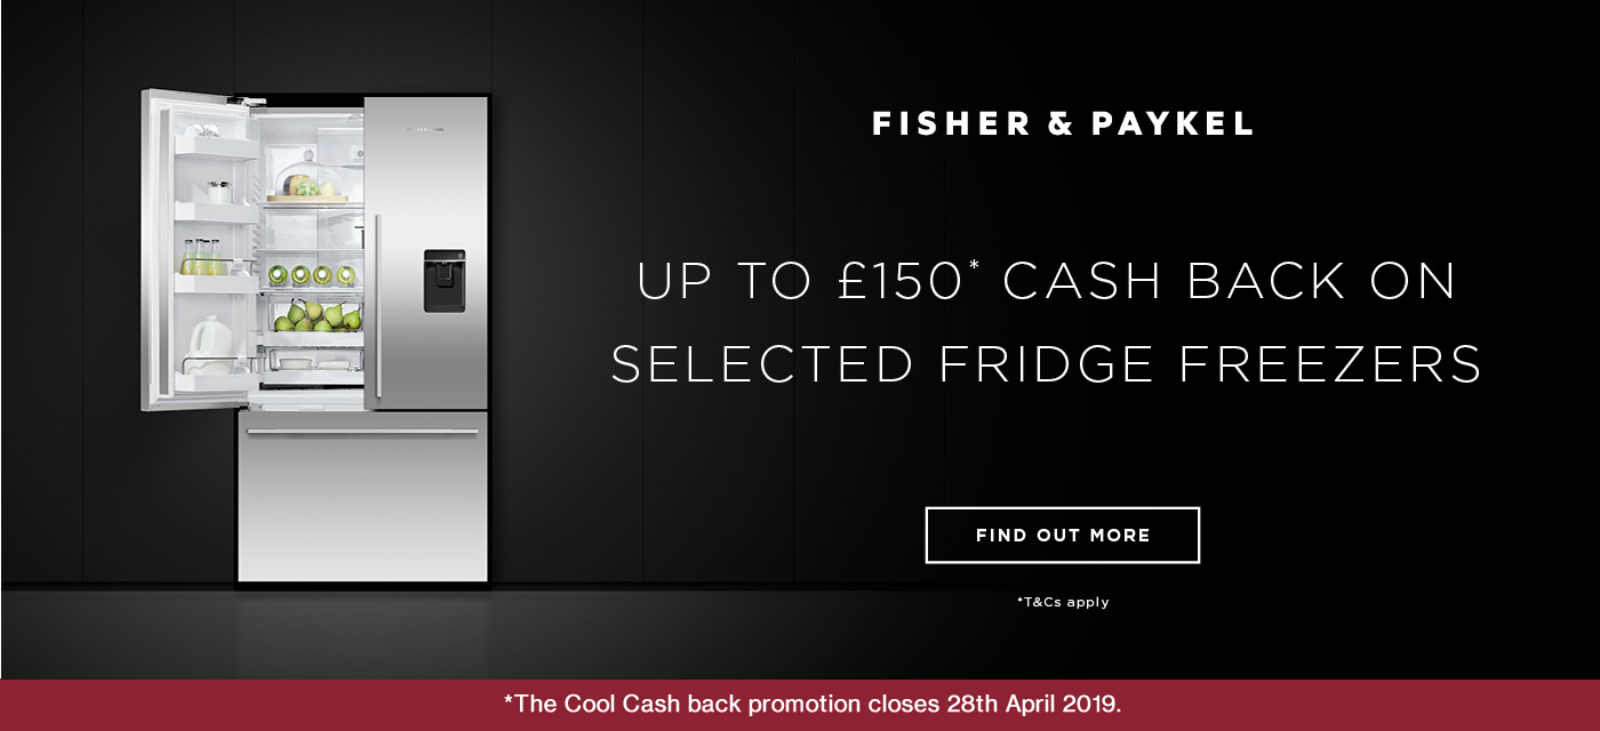 Fisher & Paykel Cool Cash Back Promotion